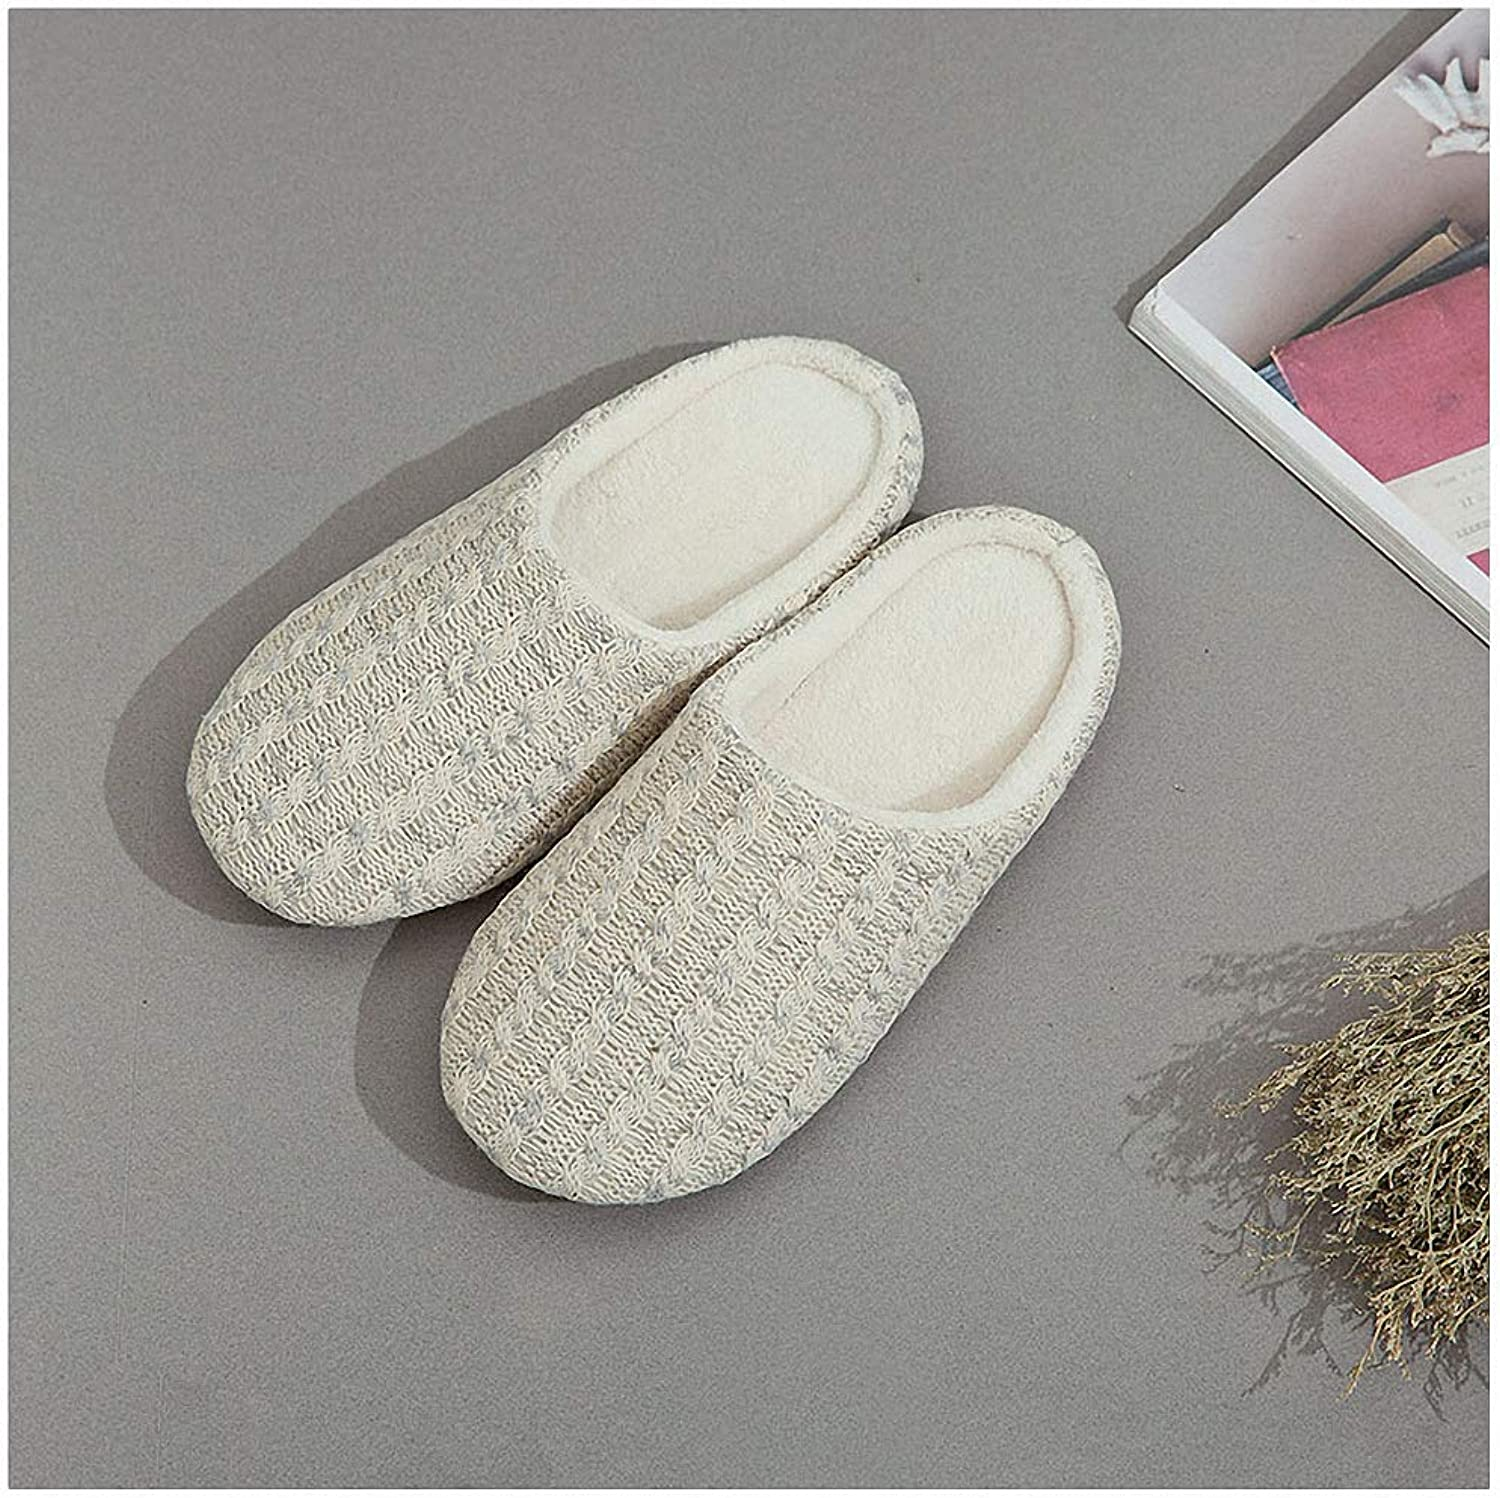 Womens Slippers Japanese Style Women Indoor Home Slippers Plush Slippers Ladies Cotton Autumn Knitting Cashmere Breathable Indoor Floor shoes